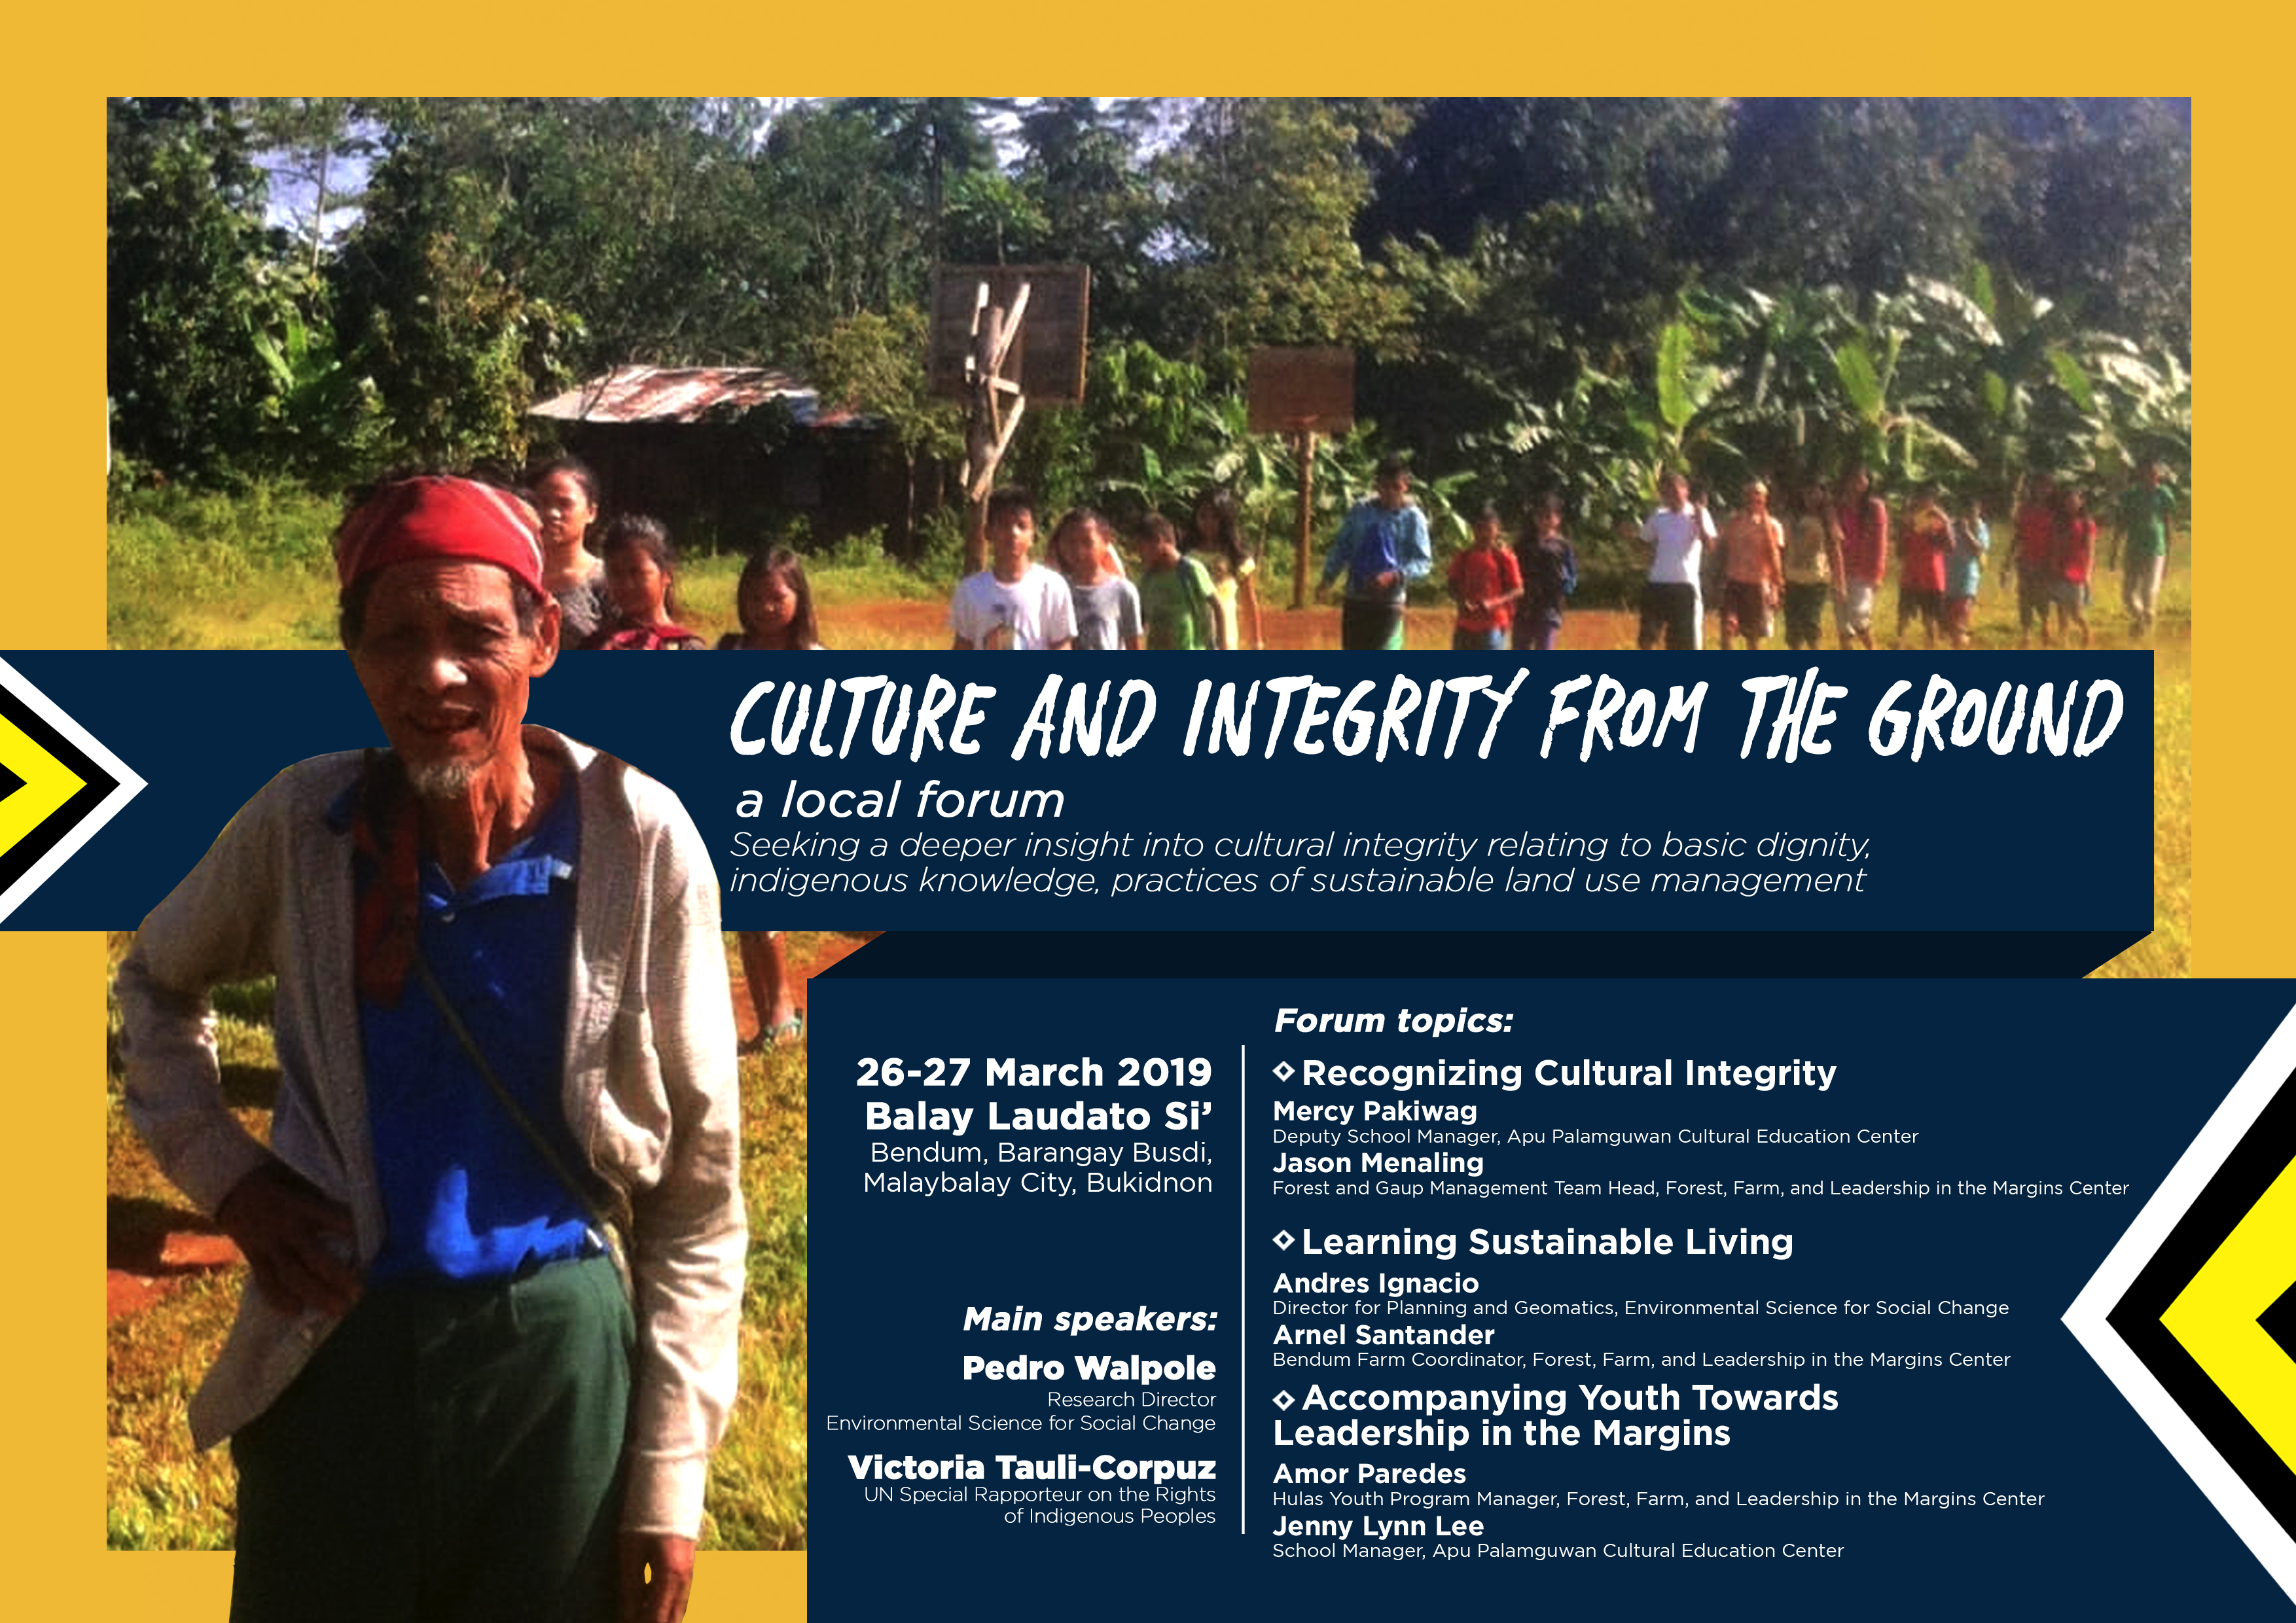 Culture and integrity from the ground, a local forum